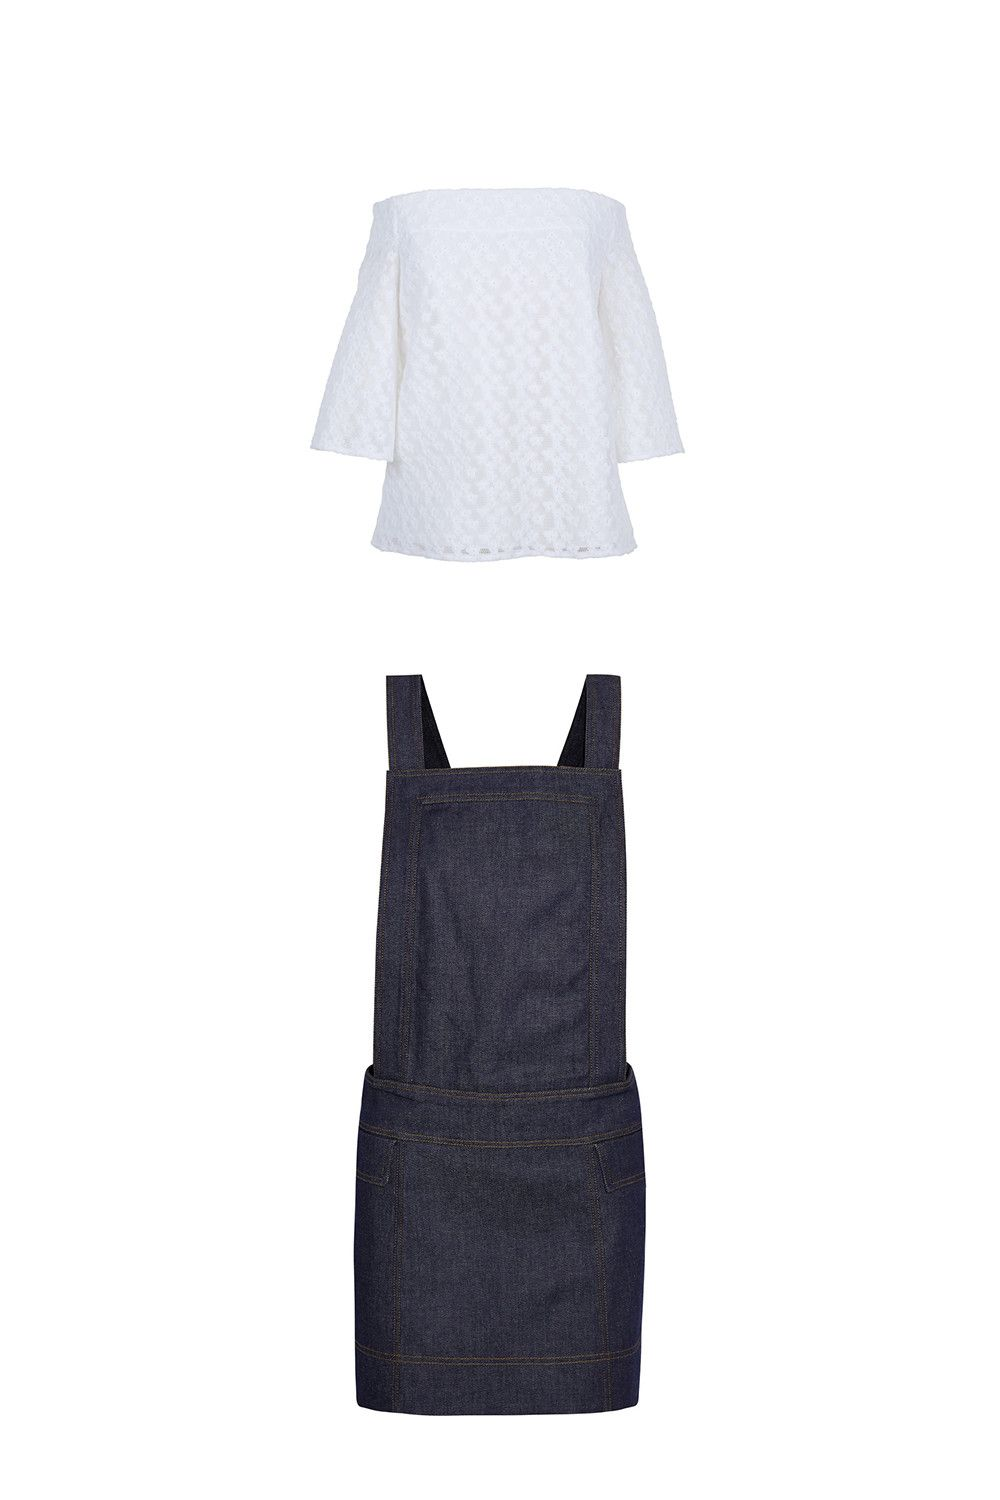 "<p>I still haven't found a not-weird way of putting a turtleneck under a Bardot neckline, so why fight it? Look for dungarees or an overall dress, tuck in the top well at the sides, and take a look at the winners of our <a href=""http://www.marieclaire.com/fashion/news/g3430/best-black-tights/"" target=""_blank"">opaque tights test</a>. If you're really committed to wearing the shirt *over* something, though, pick similar colors and fabrics. Just make sure the elasticated bit isn't too obvious—you want it to look like one cohesive garment. </p><p>Tibi floral off-the-shoulder top, $495, <a href=""http://bit.ly/1TEktXx"">tibi.com</a>; Victoria Beckham Denim dress, $205, <a href=""http://bit.ly/1NQBrKV"">net-a-porter.com</a>.<span></span></p>"